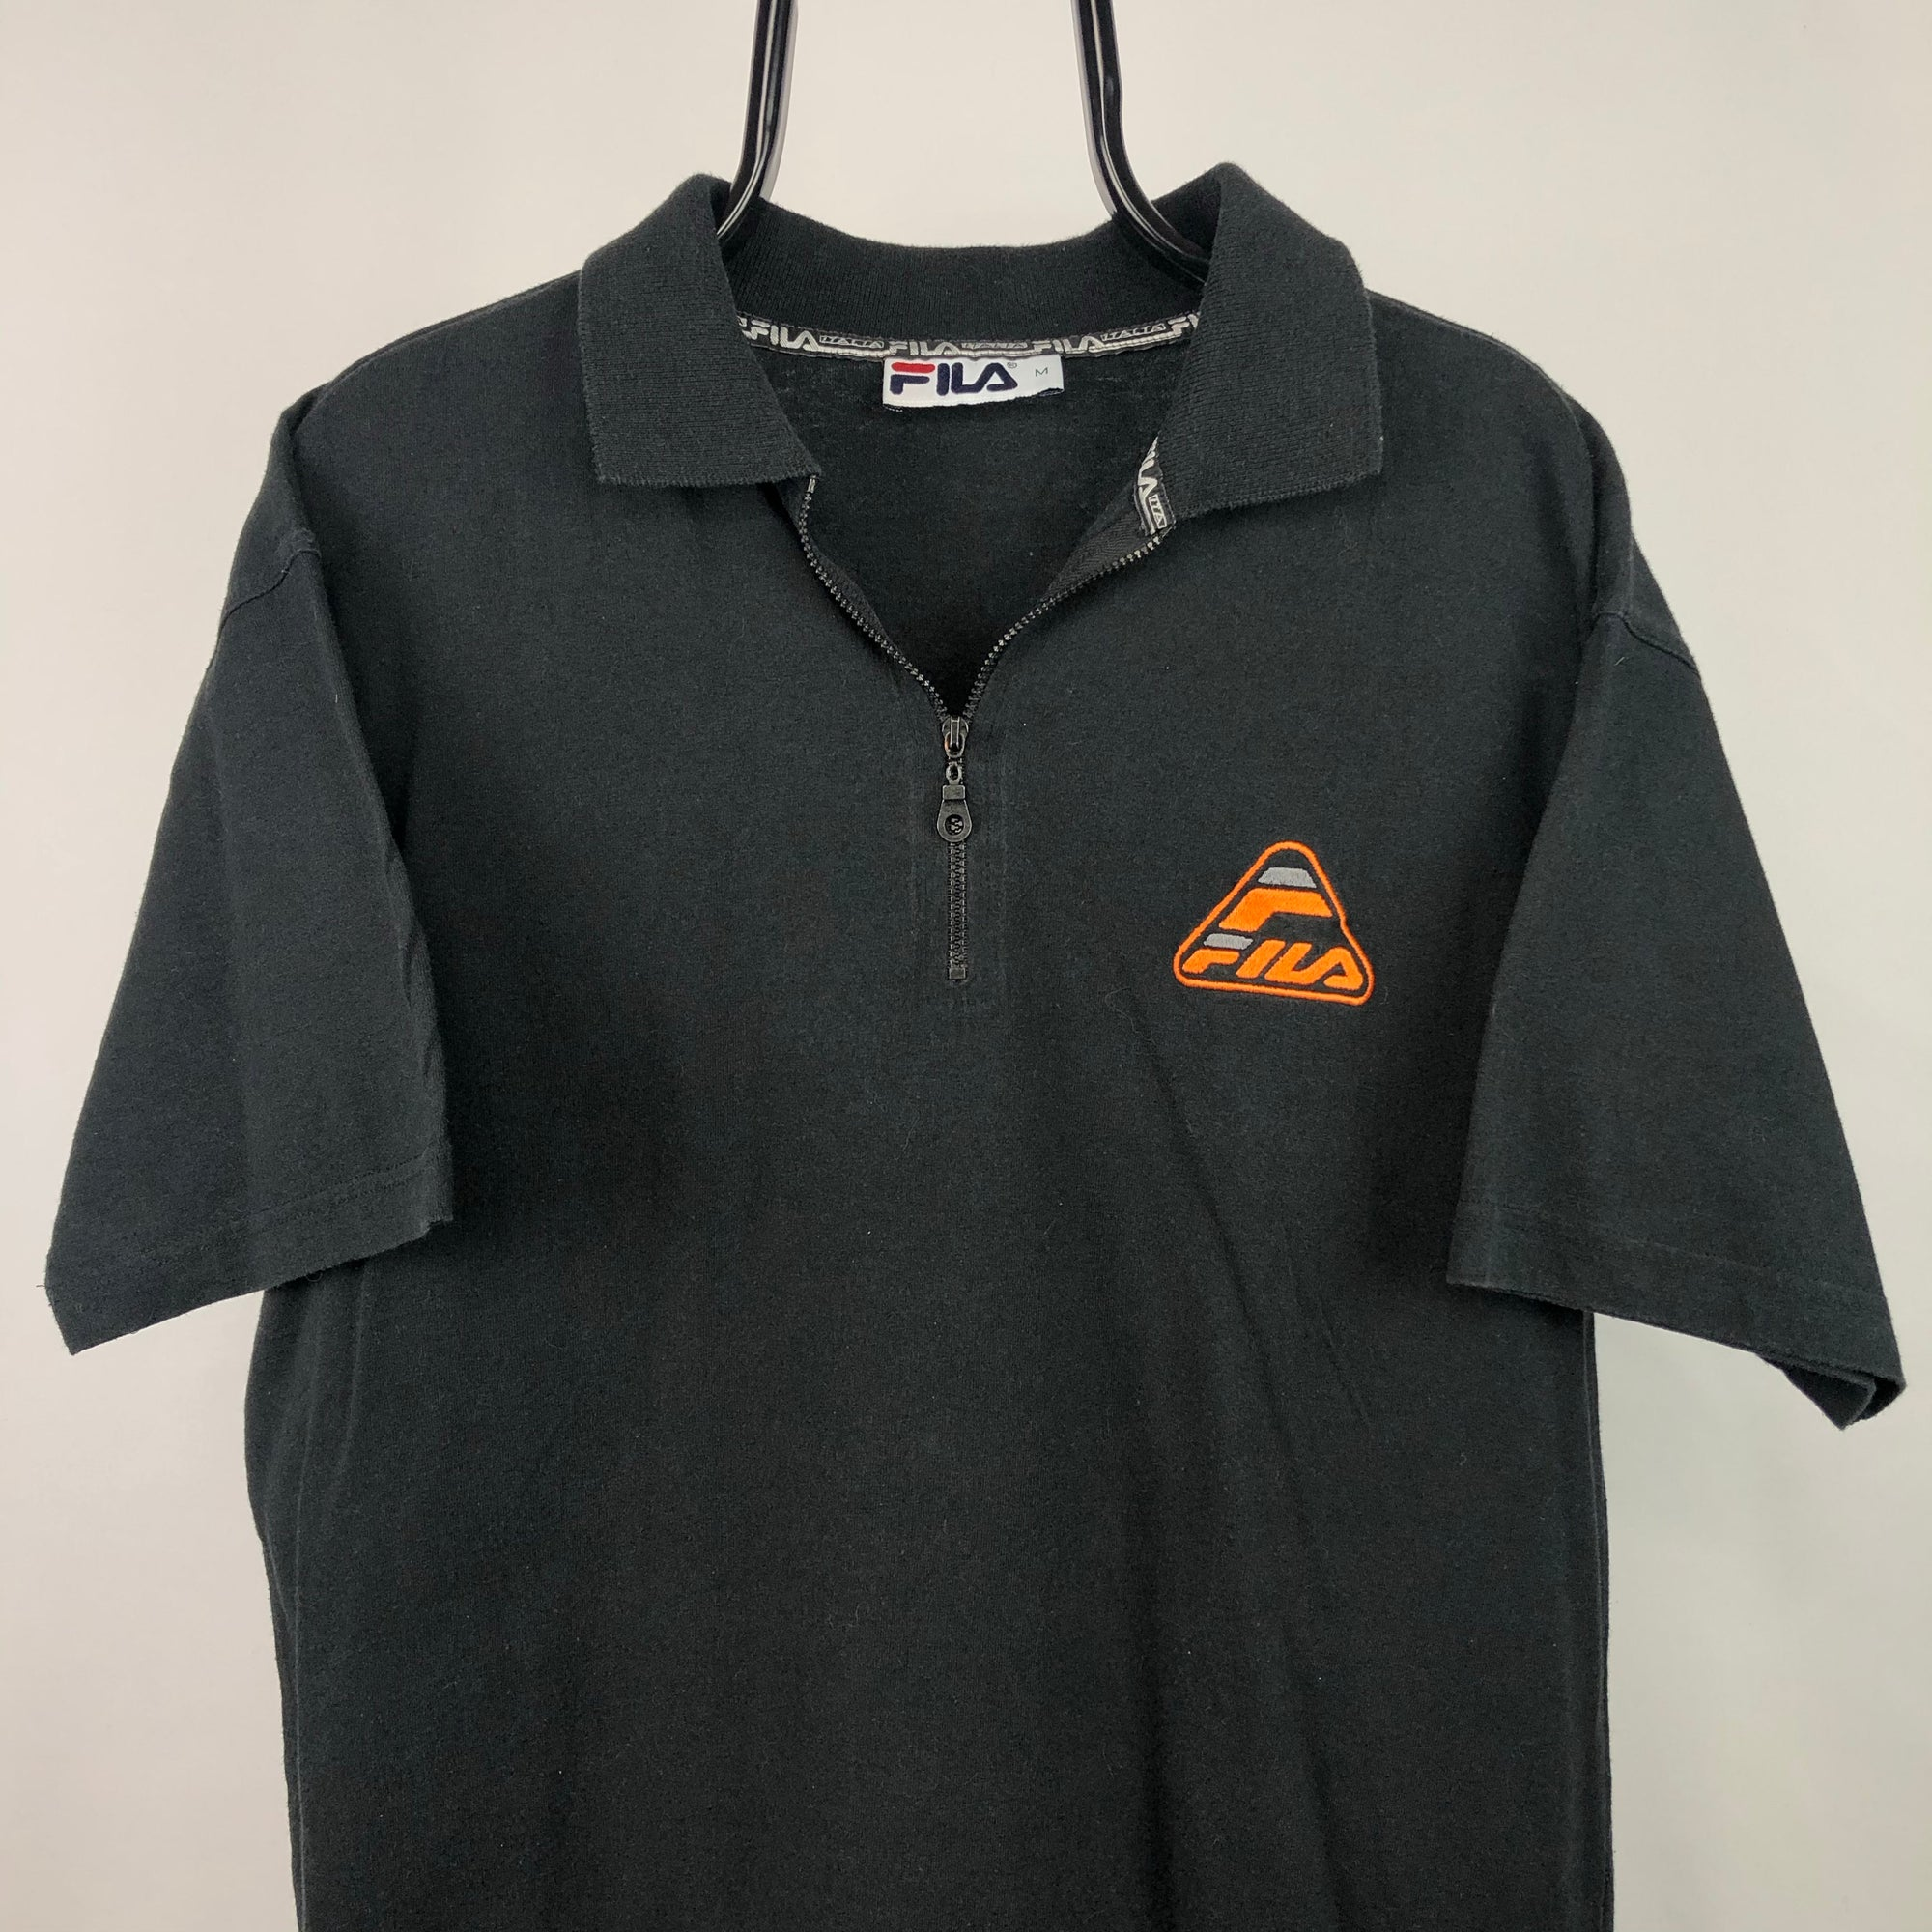 Vintage Fila Zip Up Polo Shirt - Men's Large/Women's XL